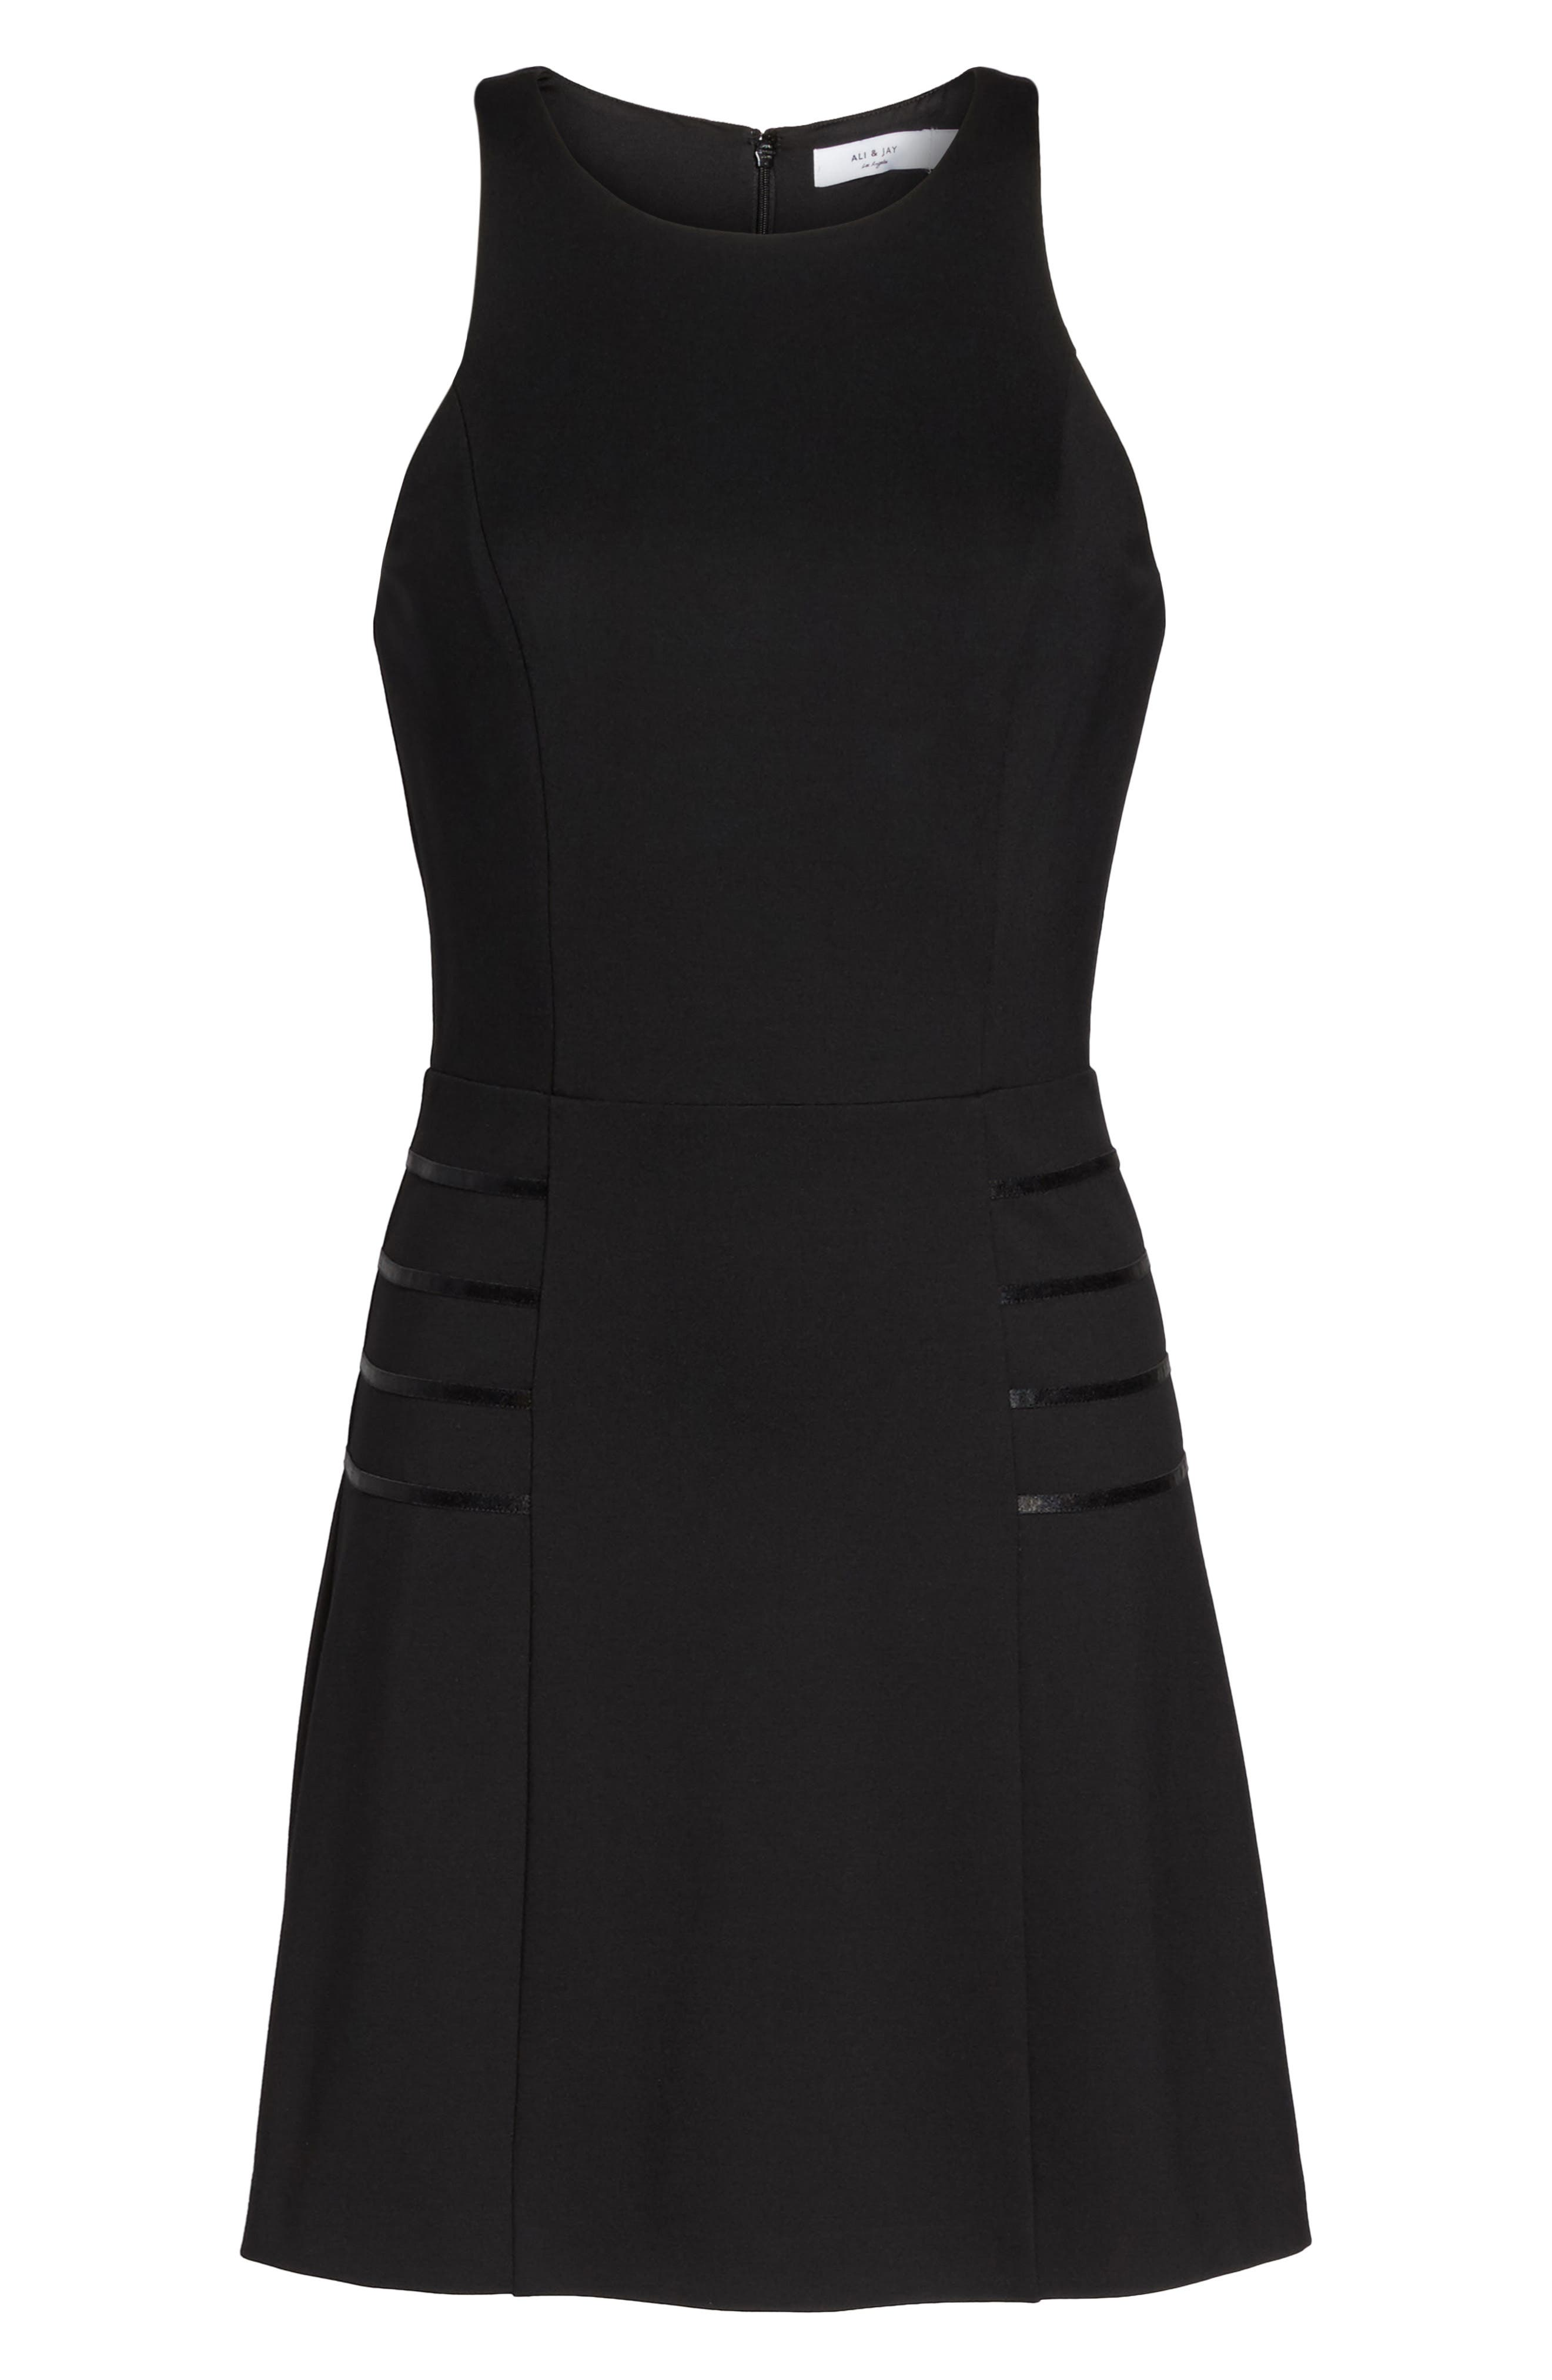 Imma Do Me Minidress,                             Alternate thumbnail 7, color,                             Black